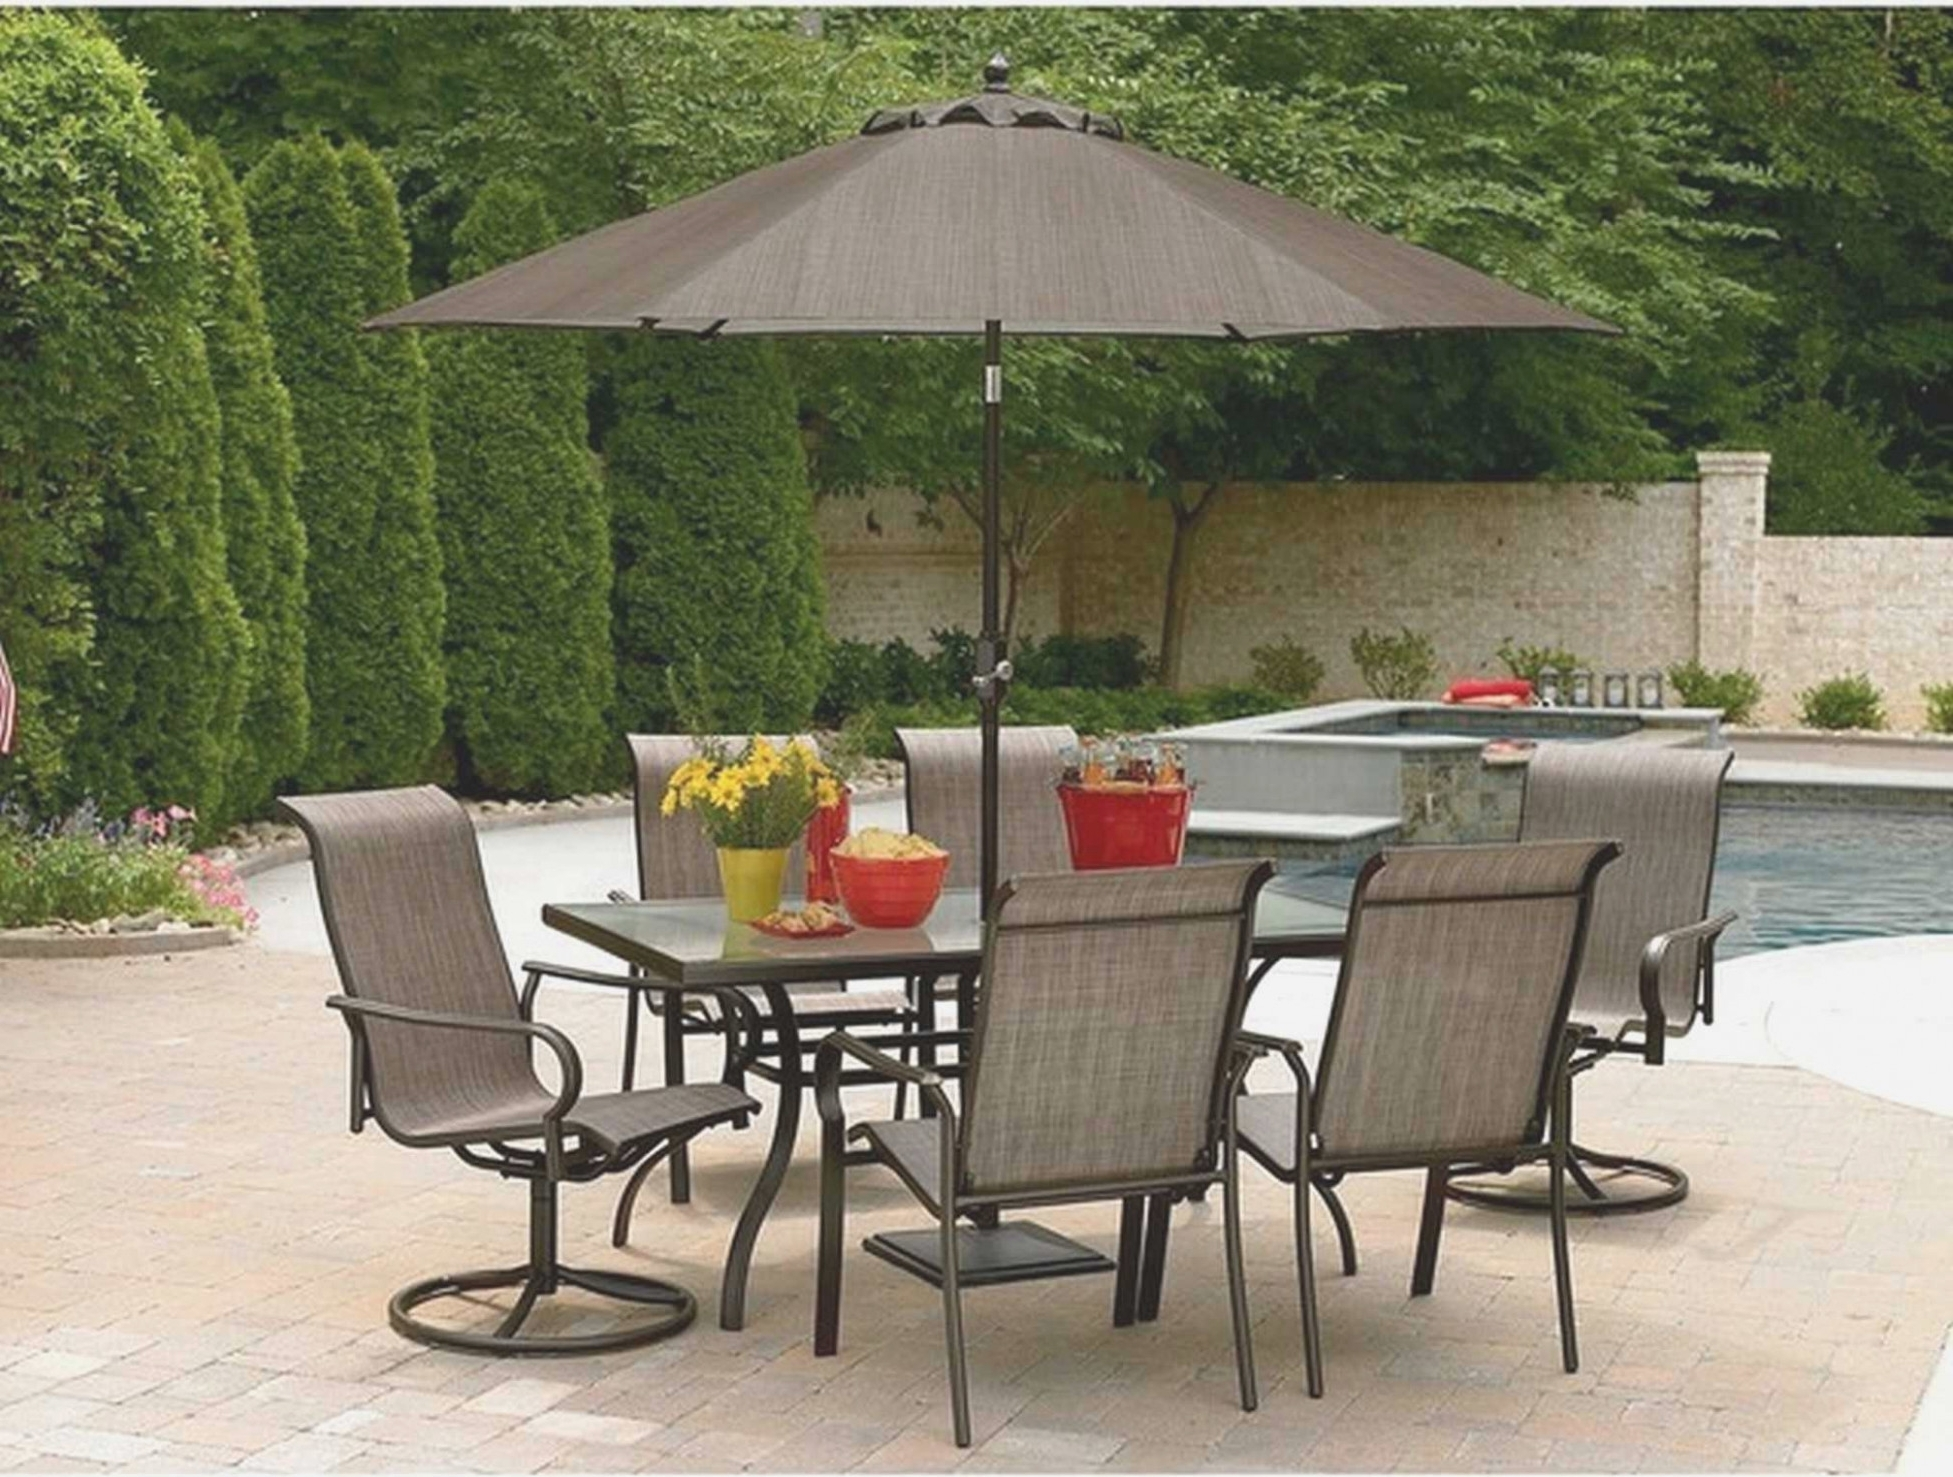 Most Recent Sears Patio Umbrella Inspirational Patio Sears Patio Umbrellas Brown With Patio Umbrellas With Table (View 4 of 20)